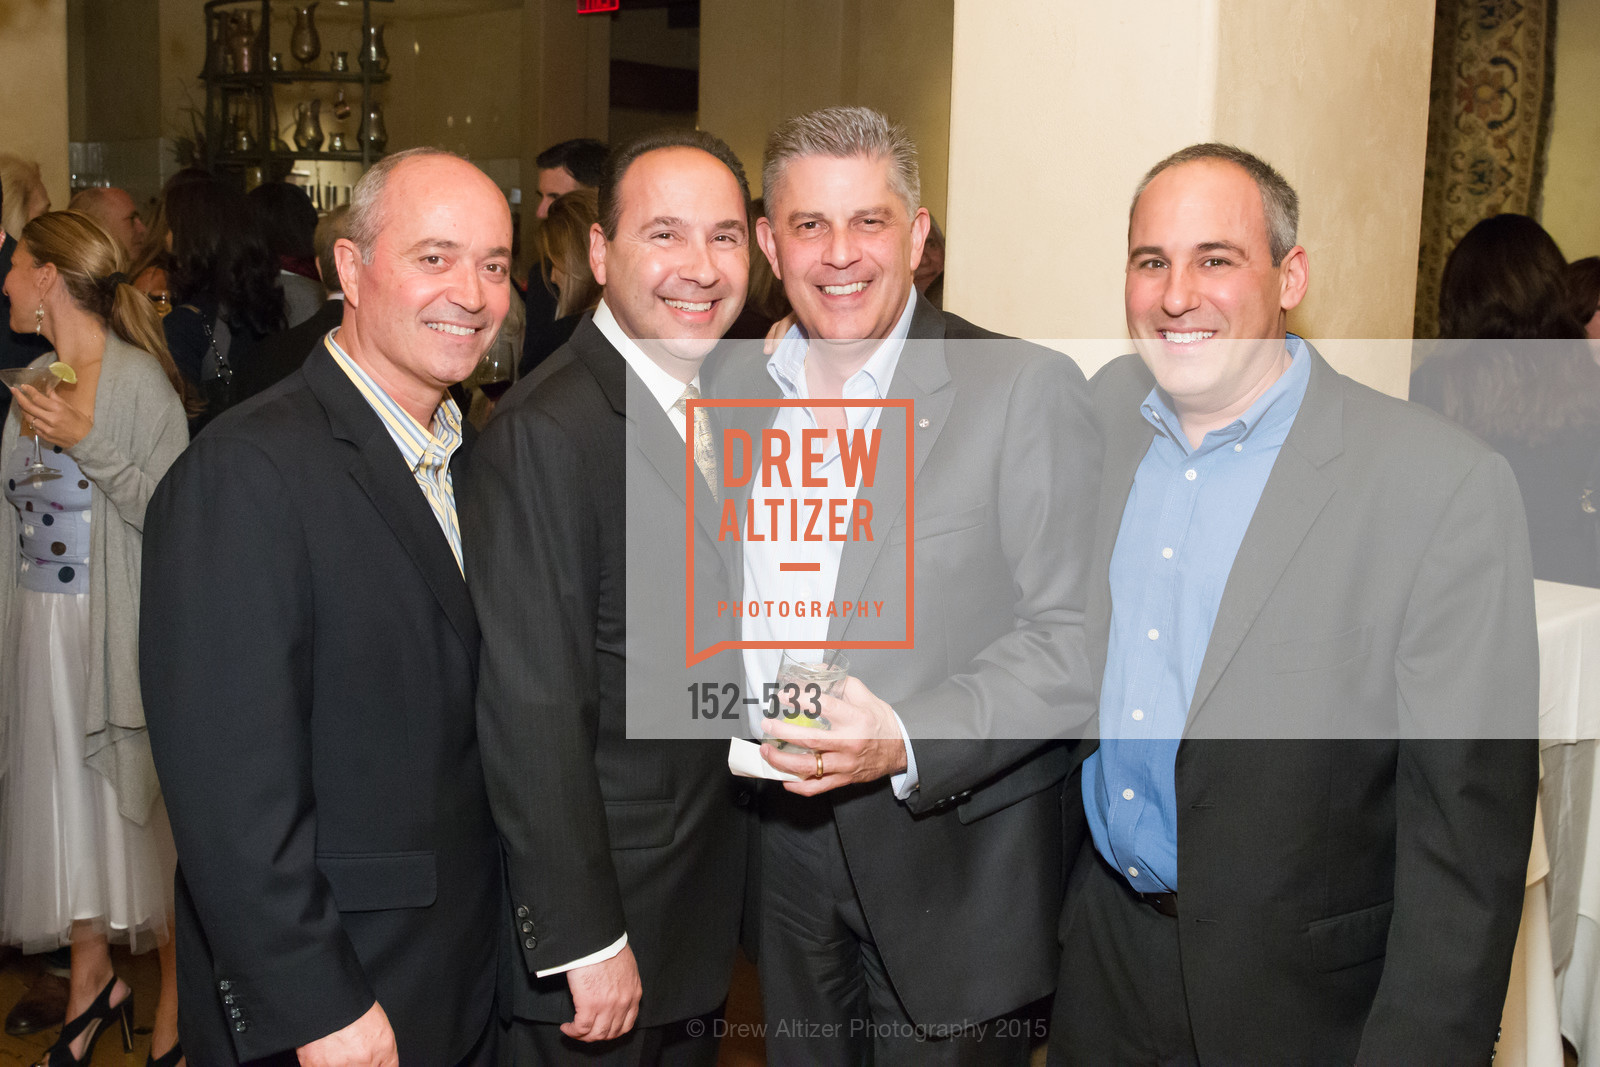 John Gumas, Gary Vrionis, Paul Sogotis, Dino Constantinides, Hellenic Charity Ball Cocktail Reception, Kokkari. 200 Jackson St, San Francisco, CA 94111, November 13th, 2015,Drew Altizer, Drew Altizer Photography, full-service agency, private events, San Francisco photographer, photographer california